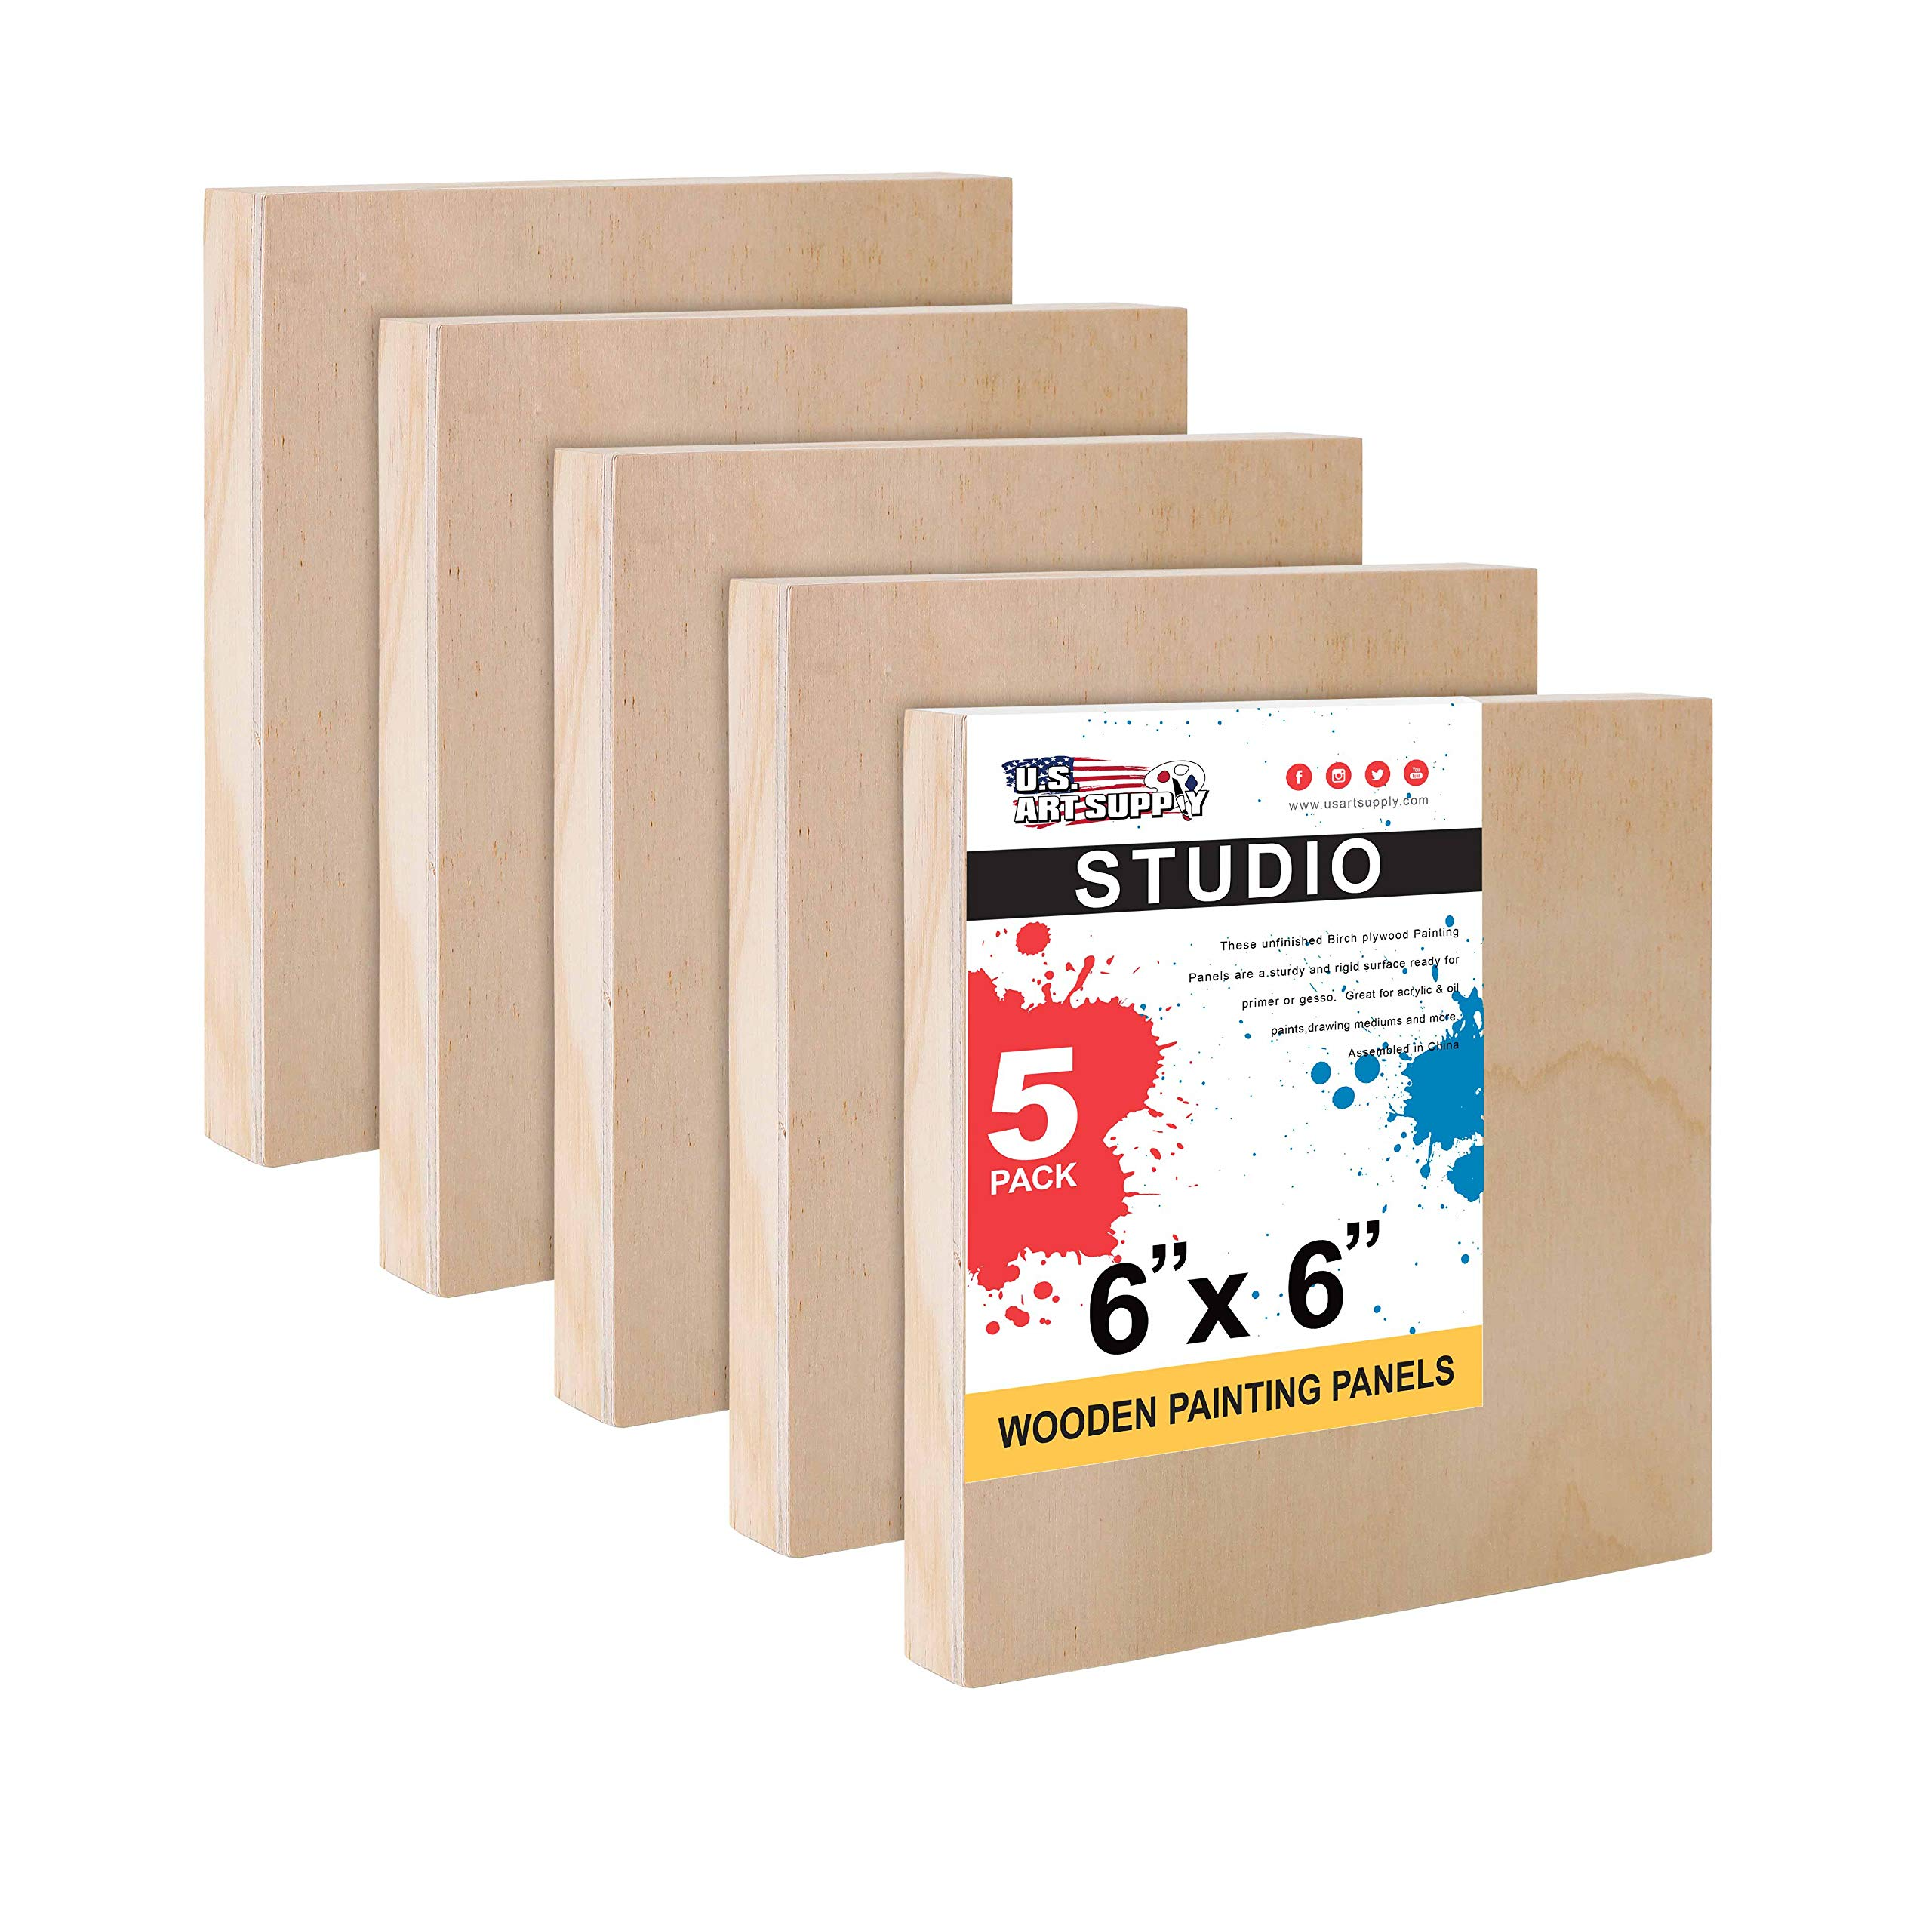 U.S. Art Supply 6'' x 6'' Birch Wood Paint Pouring Panel Boards, Studio 3/4'' Deep Cradle (Pack of 5) - Artist Wooden Wall Canvases - Painting Mixed-Media Craft, Acrylic, Oil, Watercolor, Encaustic by U.S. Art Supply